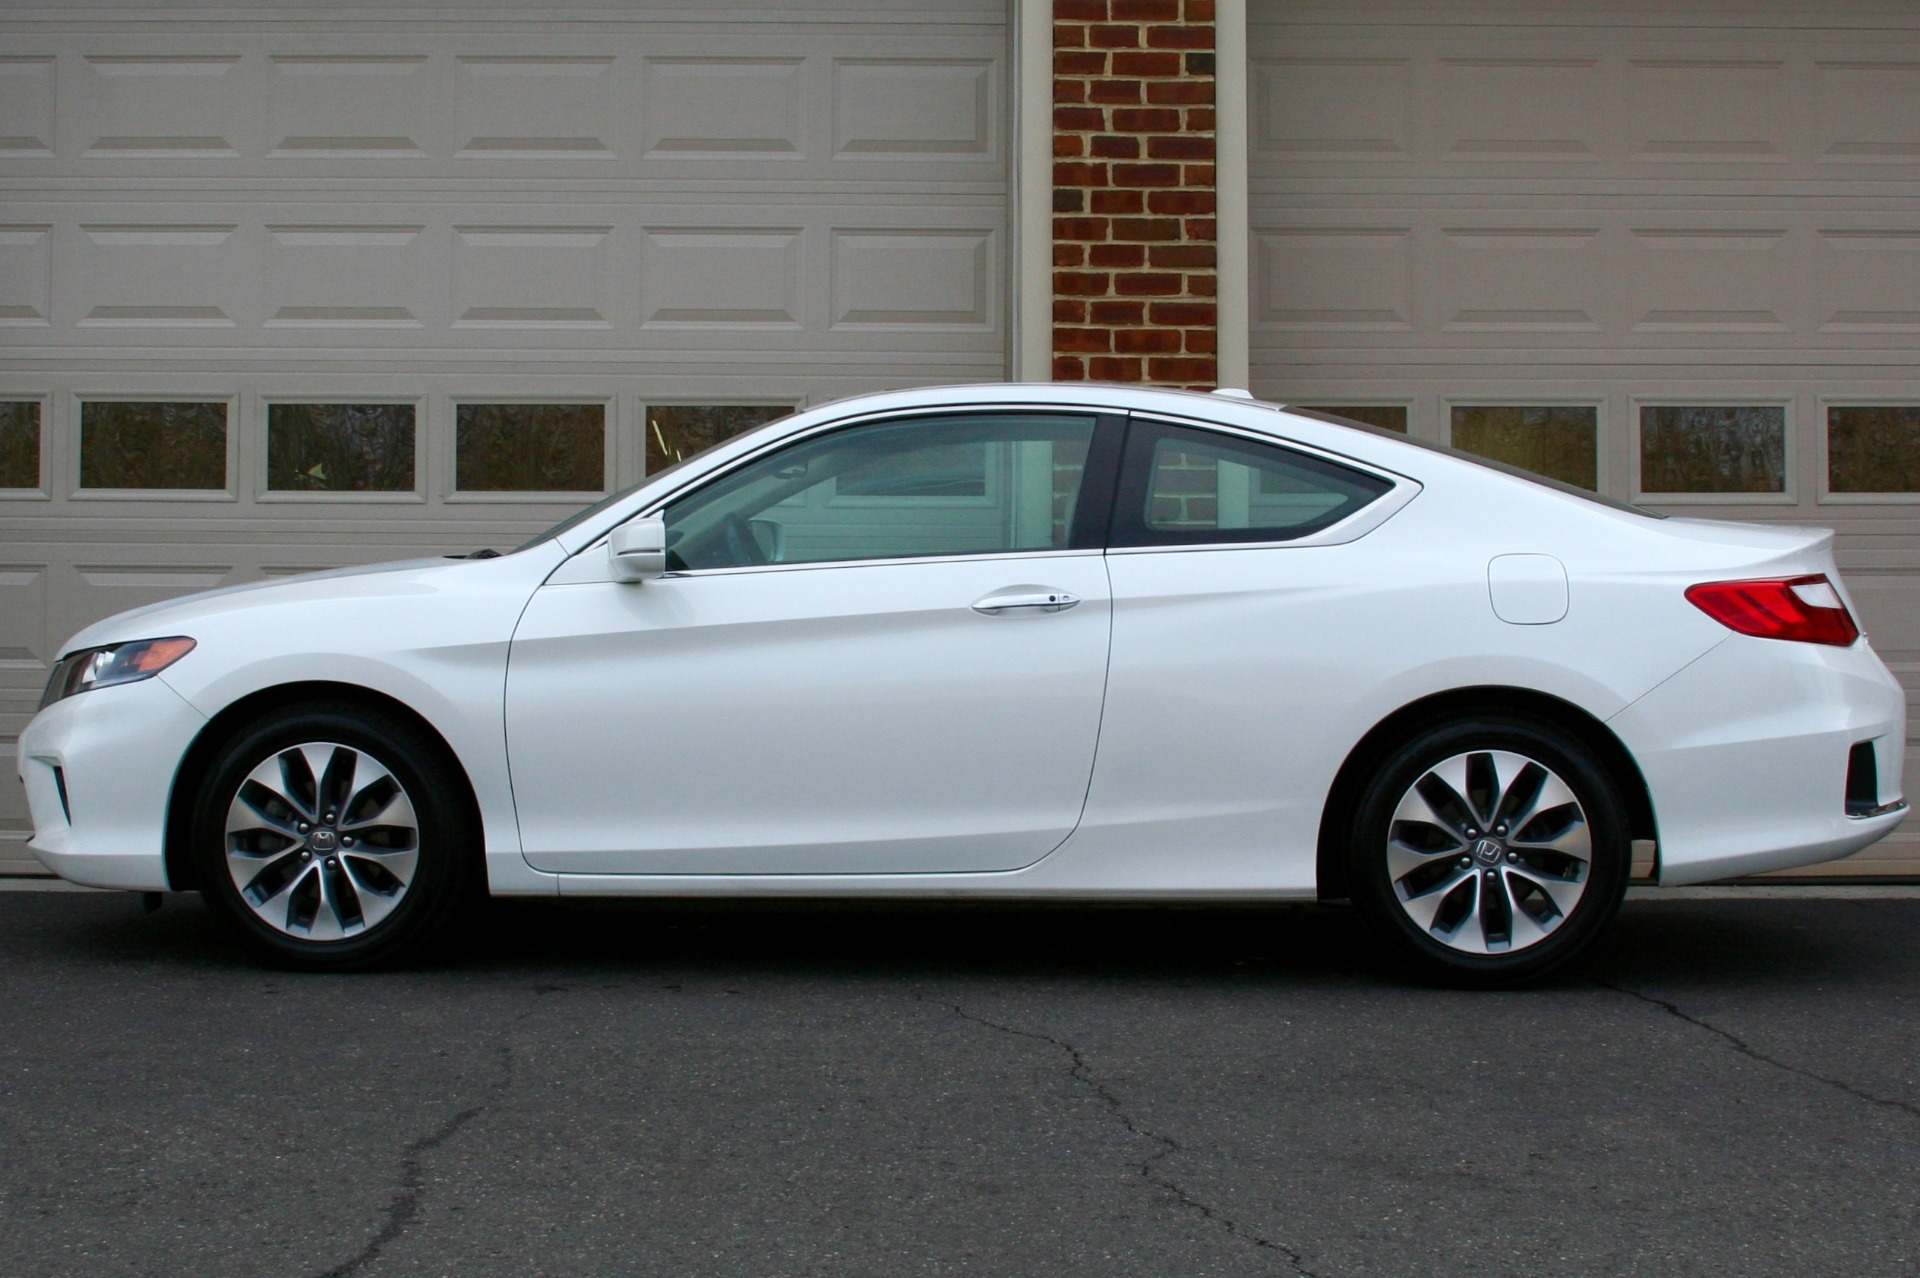 some price gallery door honda information photo amazing accord